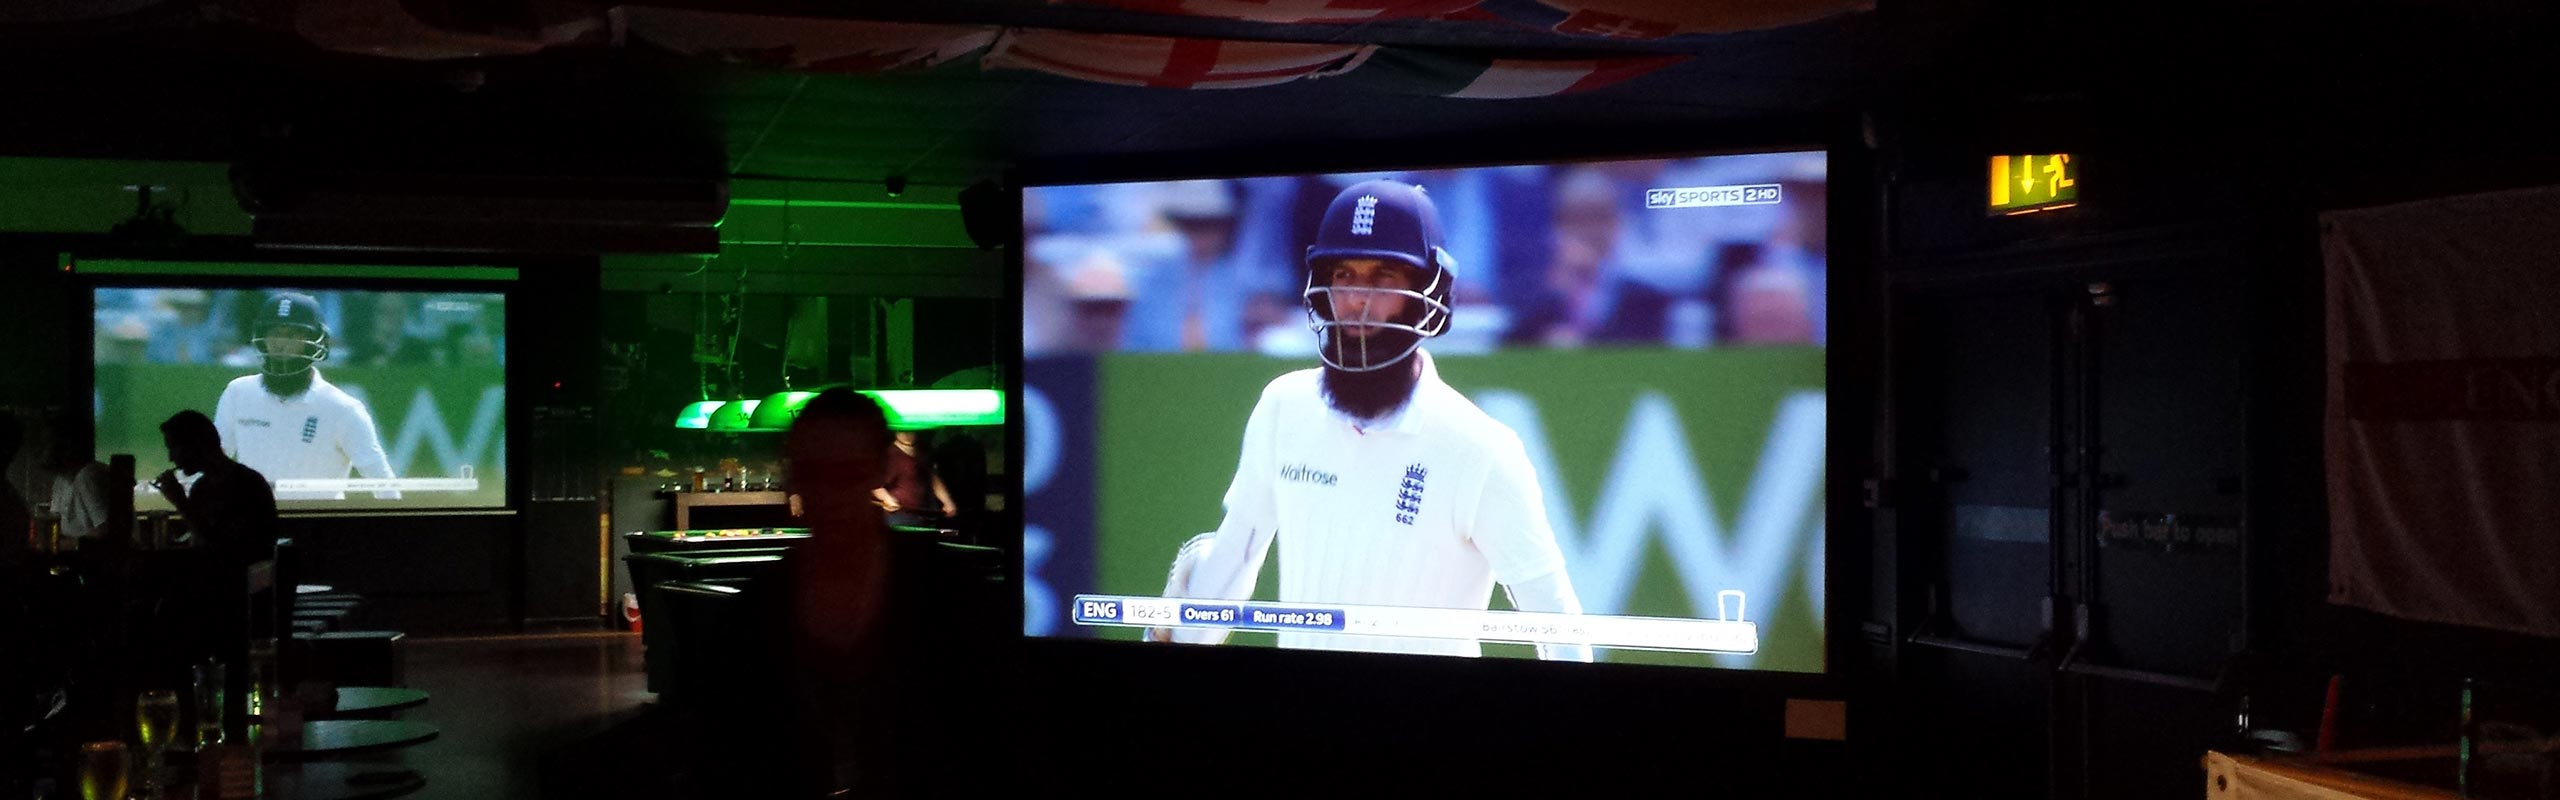 Big Screen Projectors For Pubs